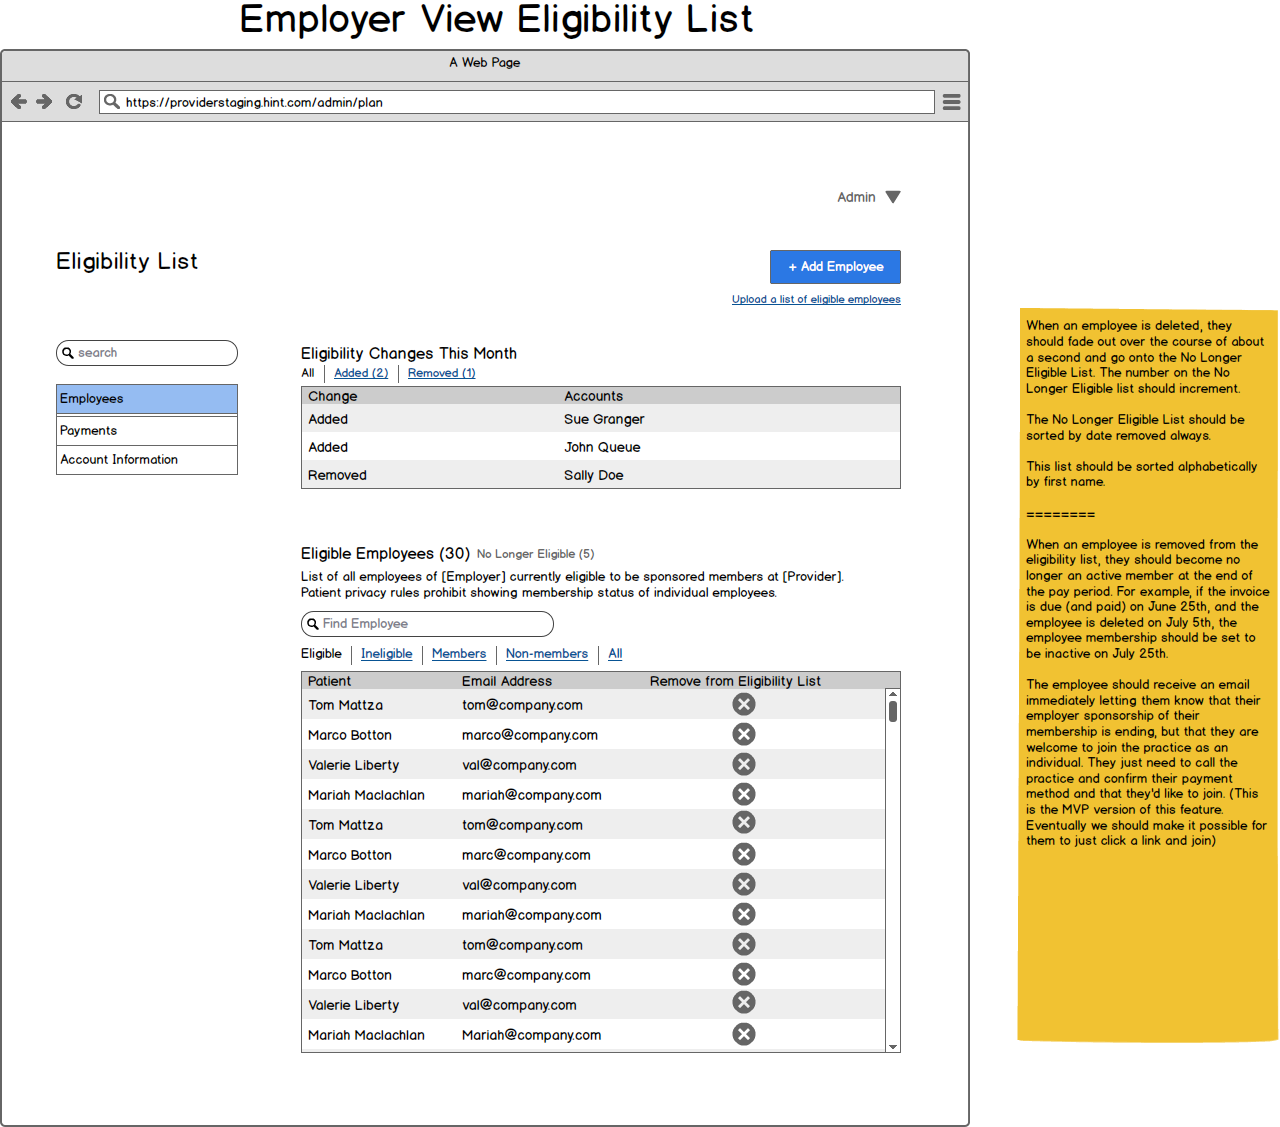 Employer view of Eligibility List